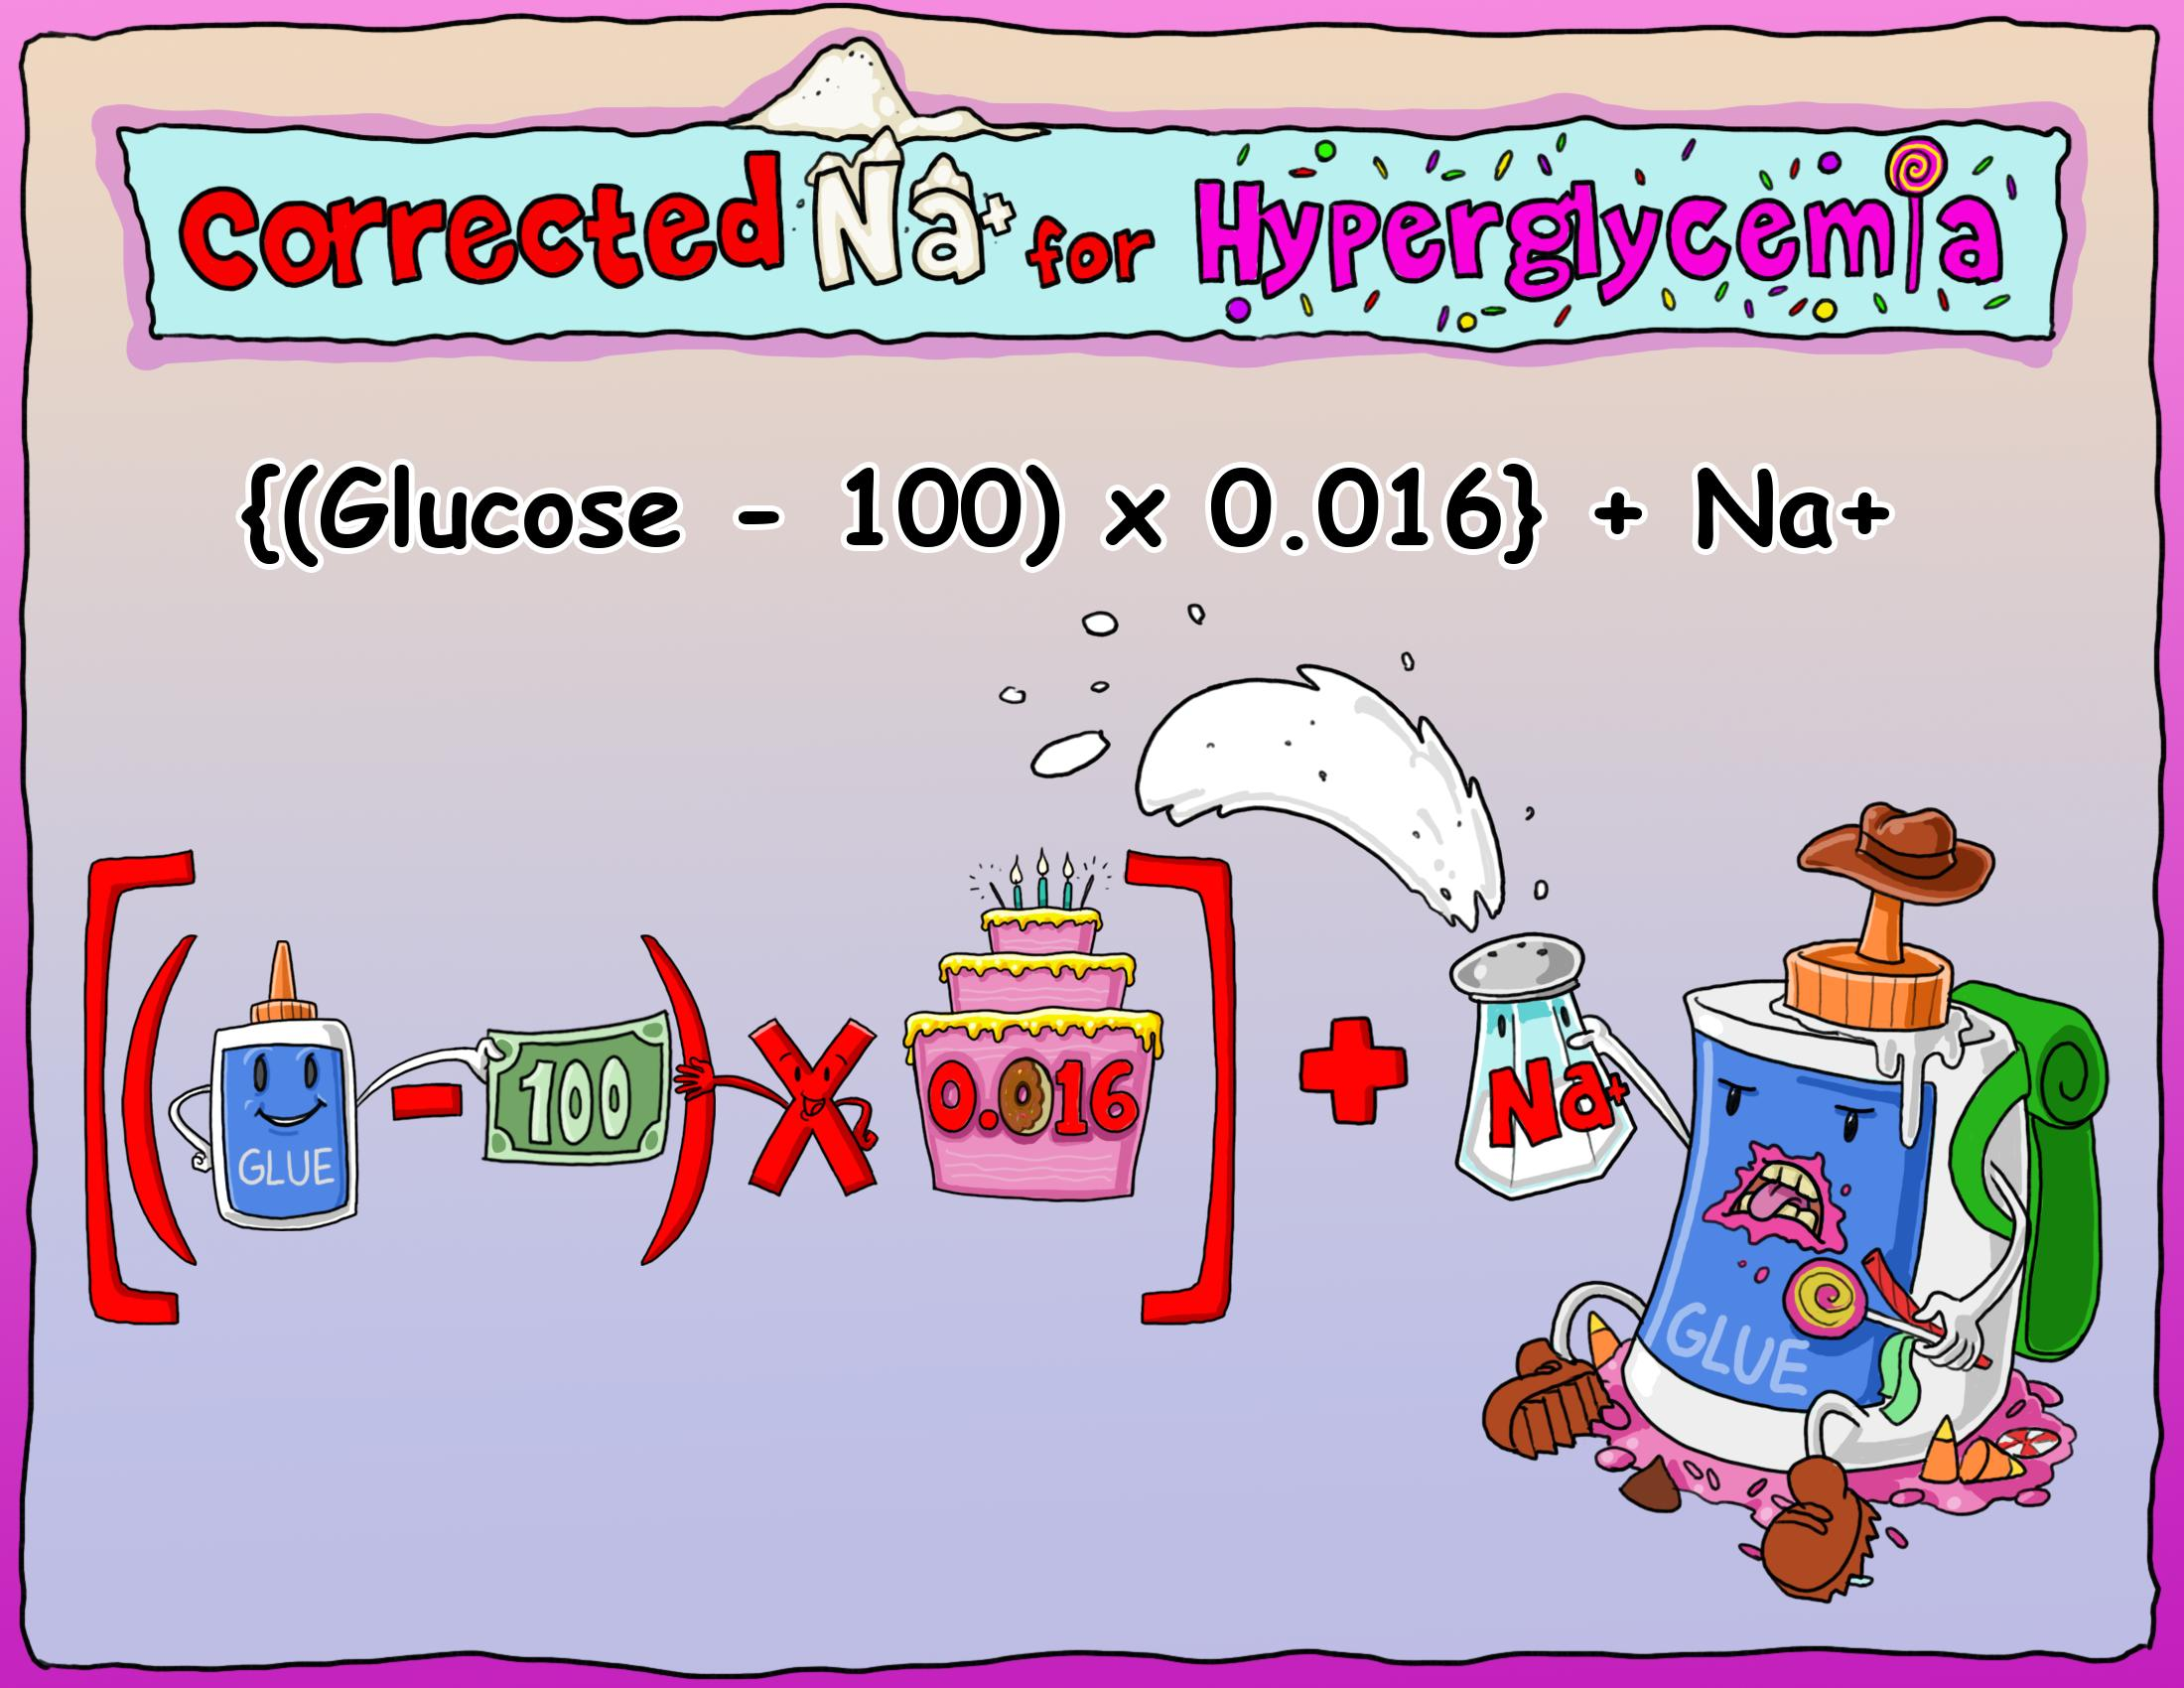 Corrected Na+ for Hyperglycemia